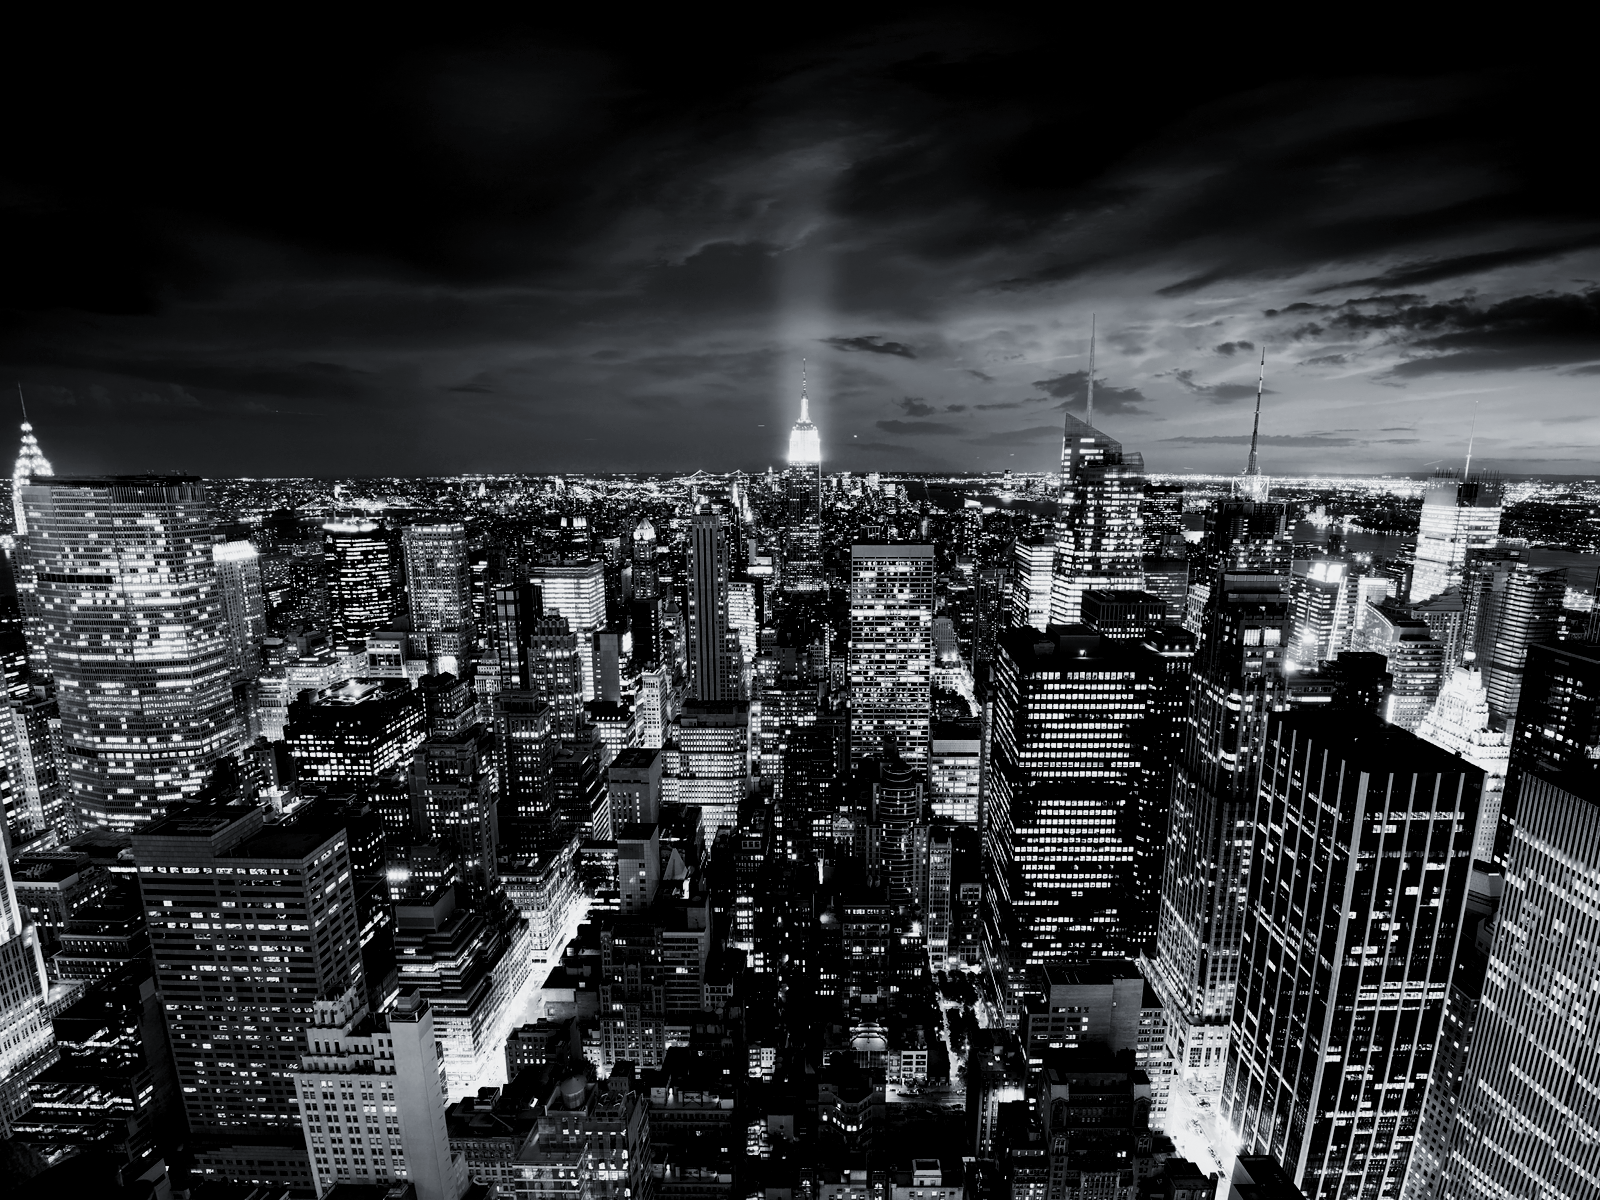 Pin By Jackson Constantine On Photography City Wallpaper Dark City Black And White City